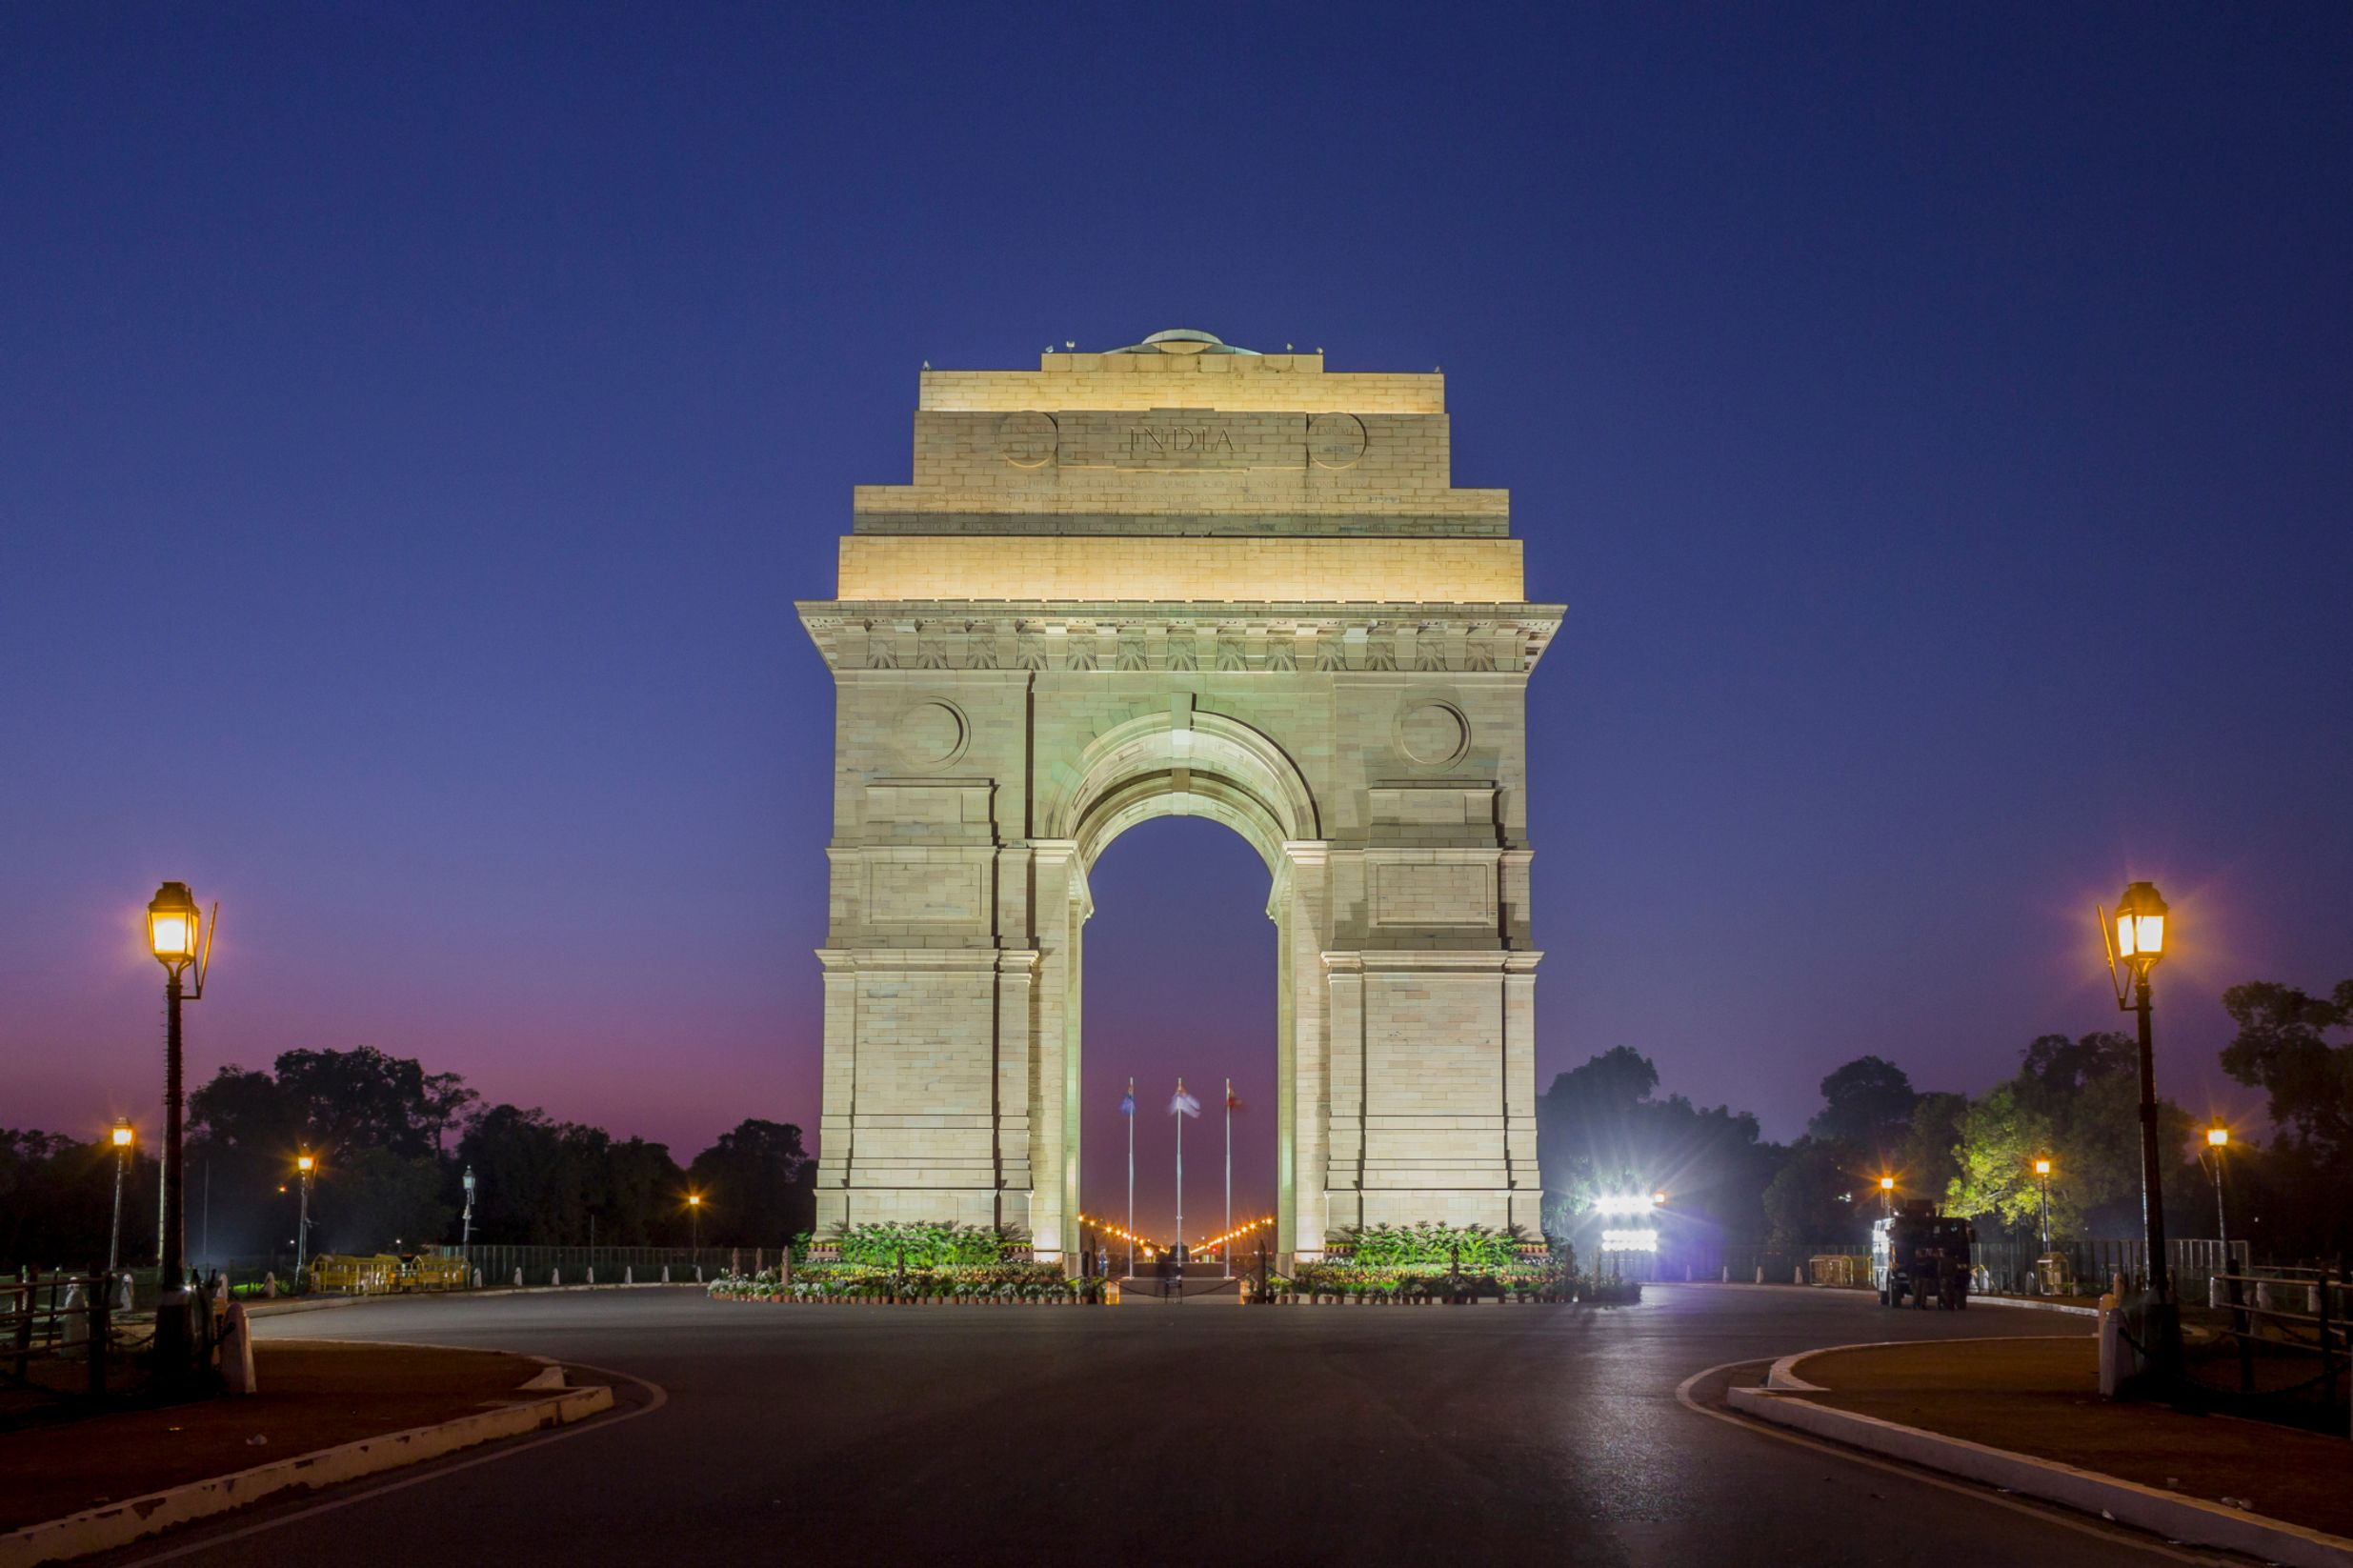 the India Gate at night in New Delhi